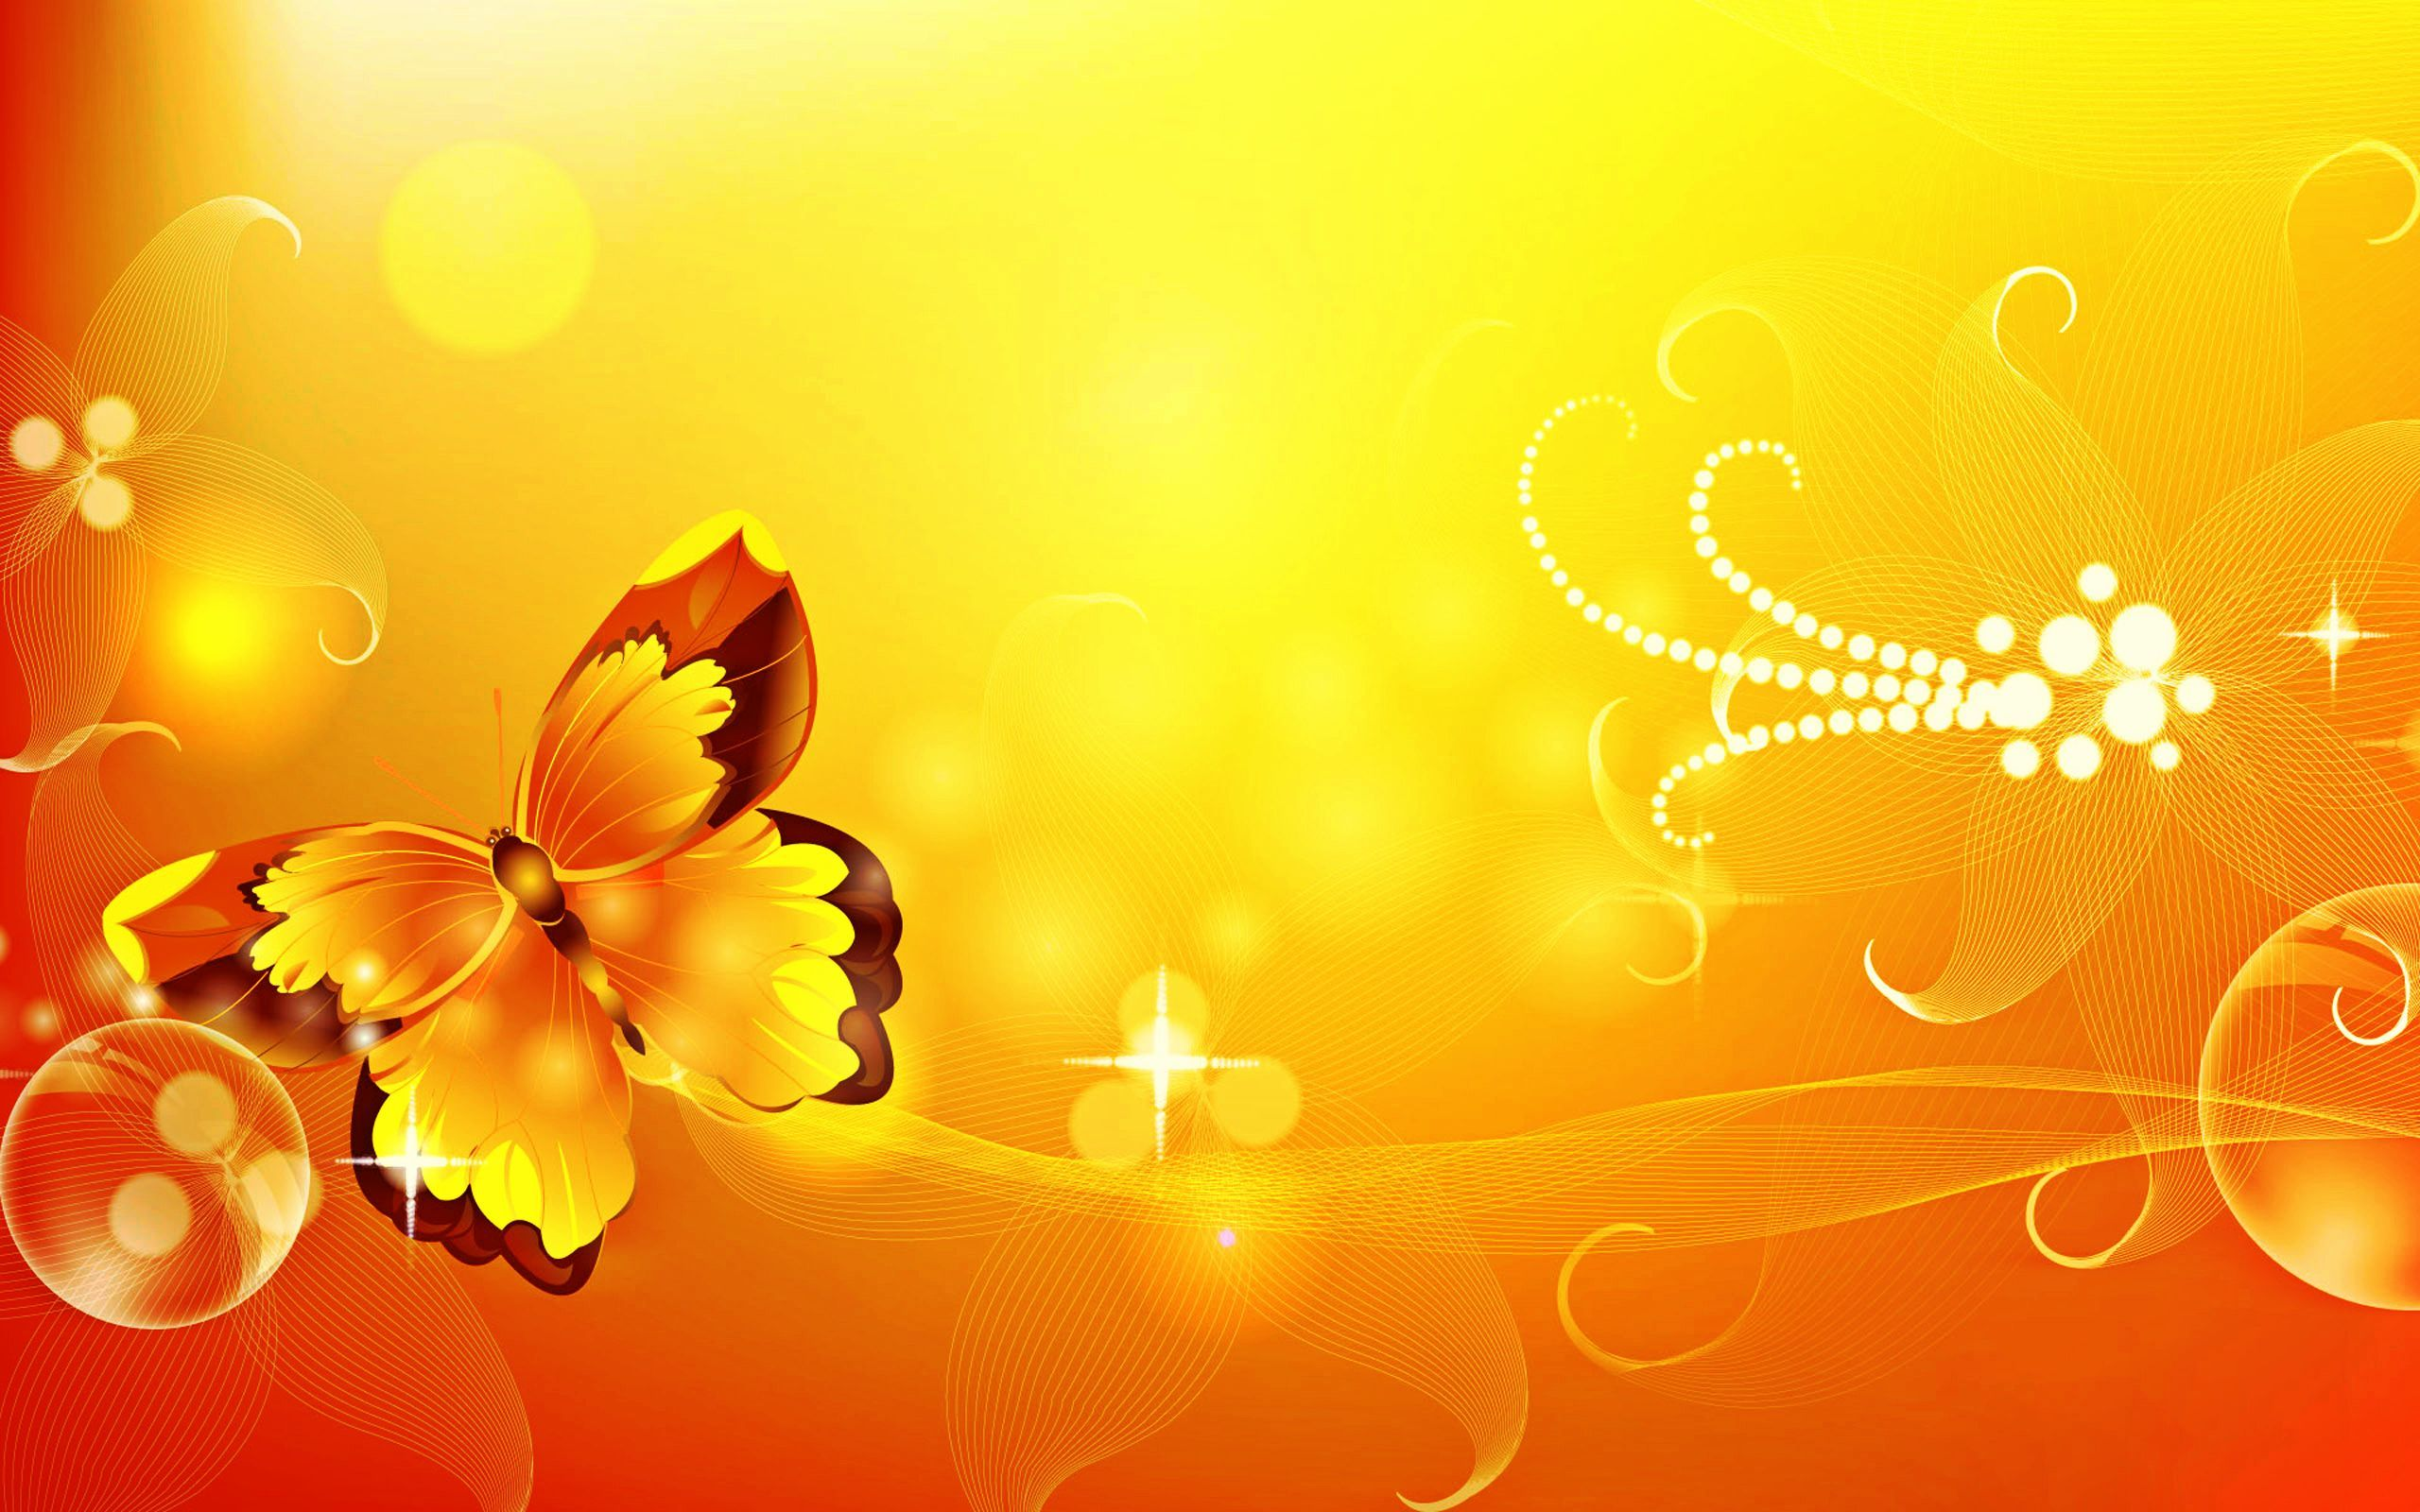 Yellow Floral Background Hd